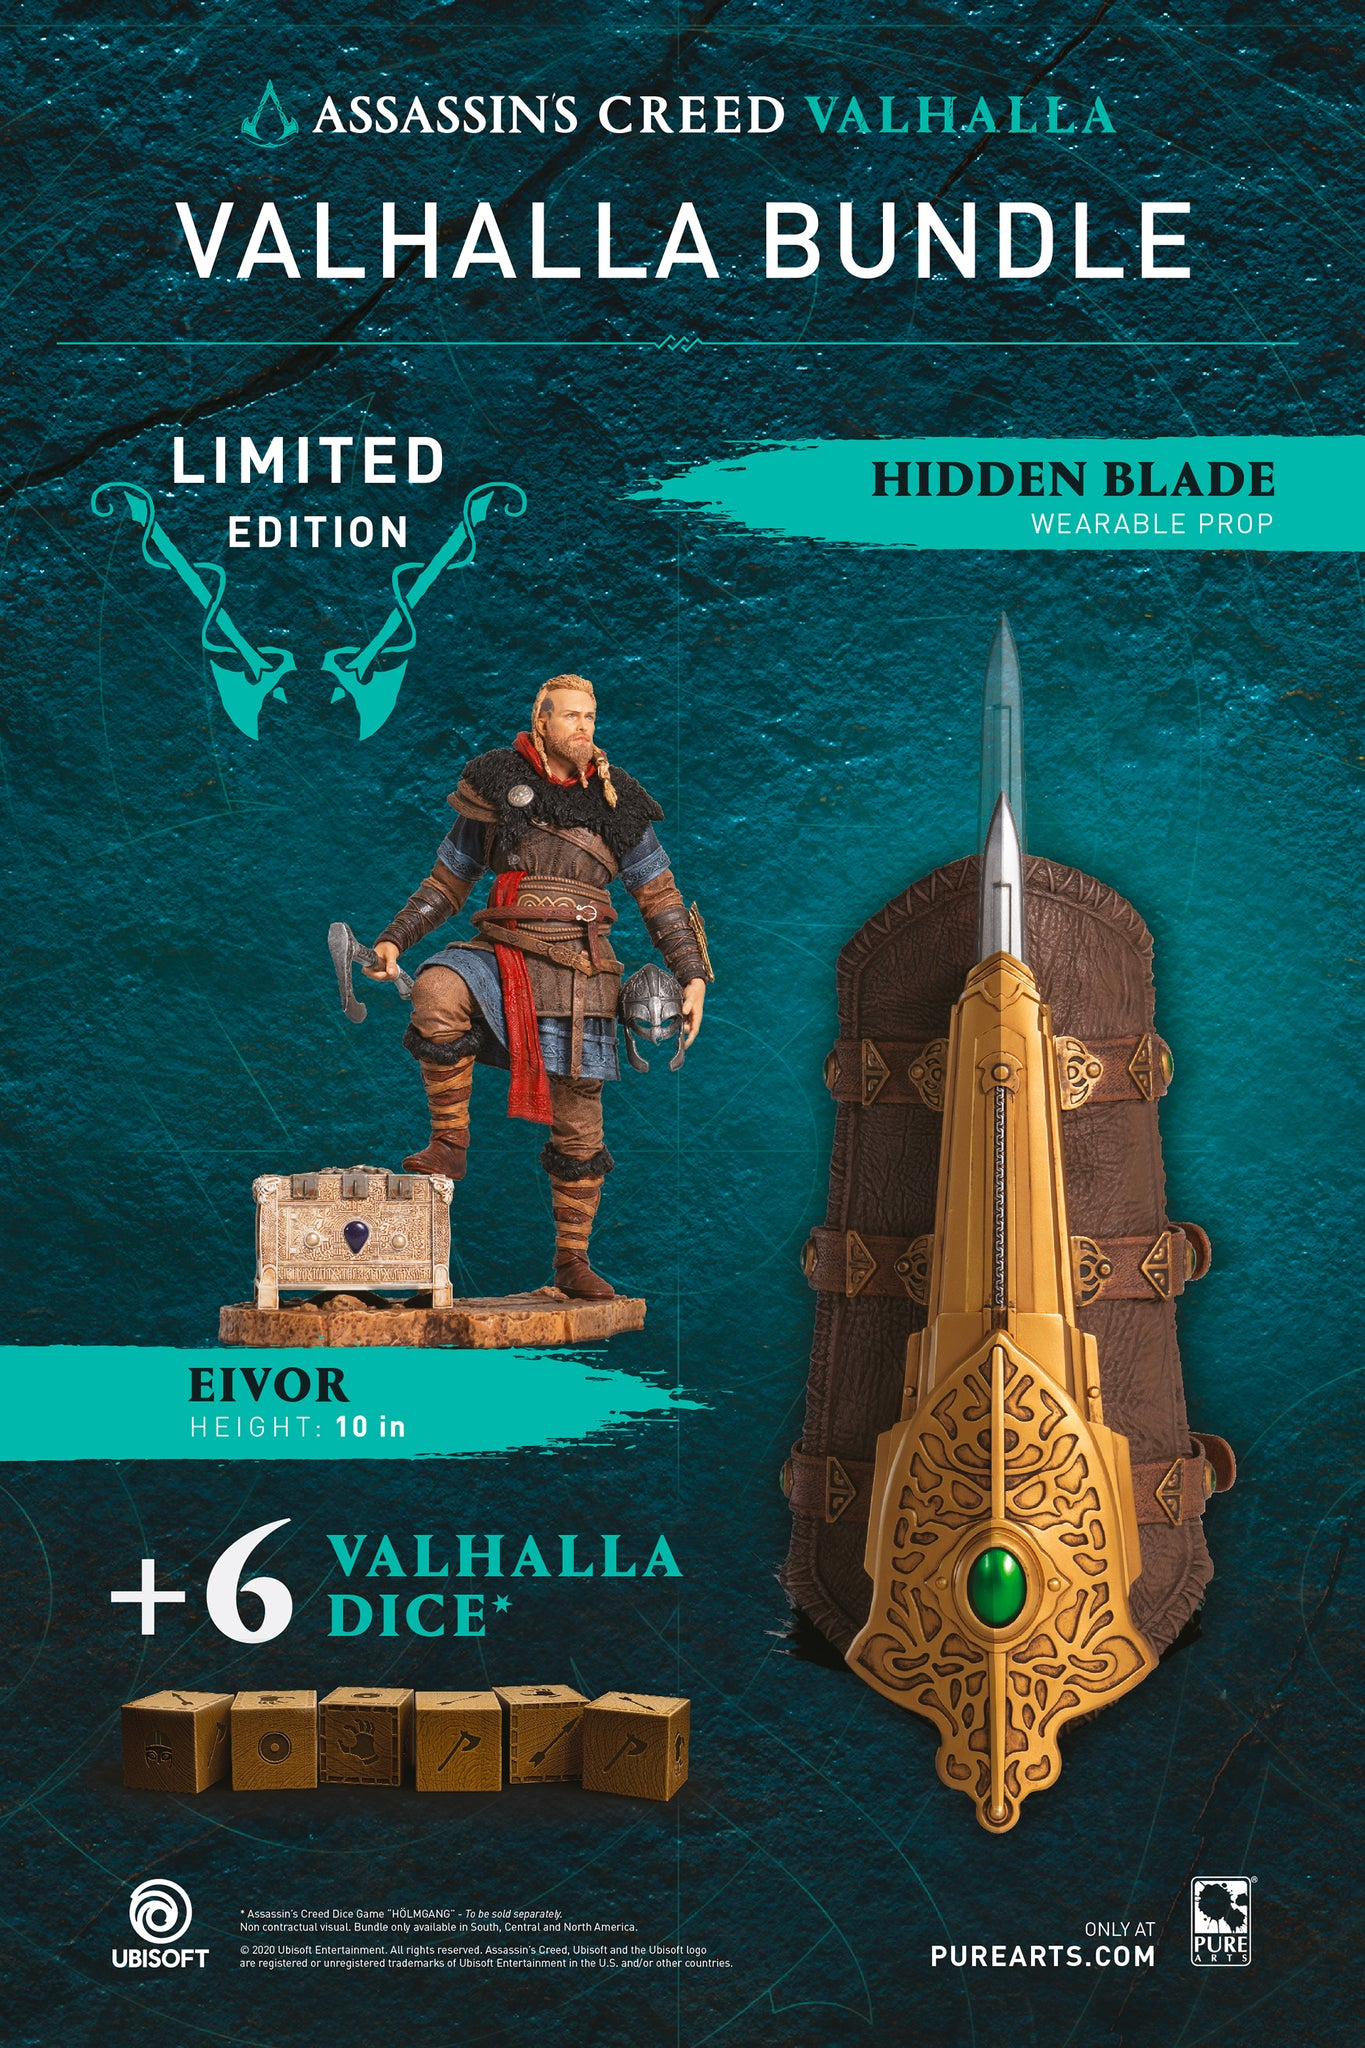 Assassin S Creed Valhalla Bundle With Eivor Statue Life Size